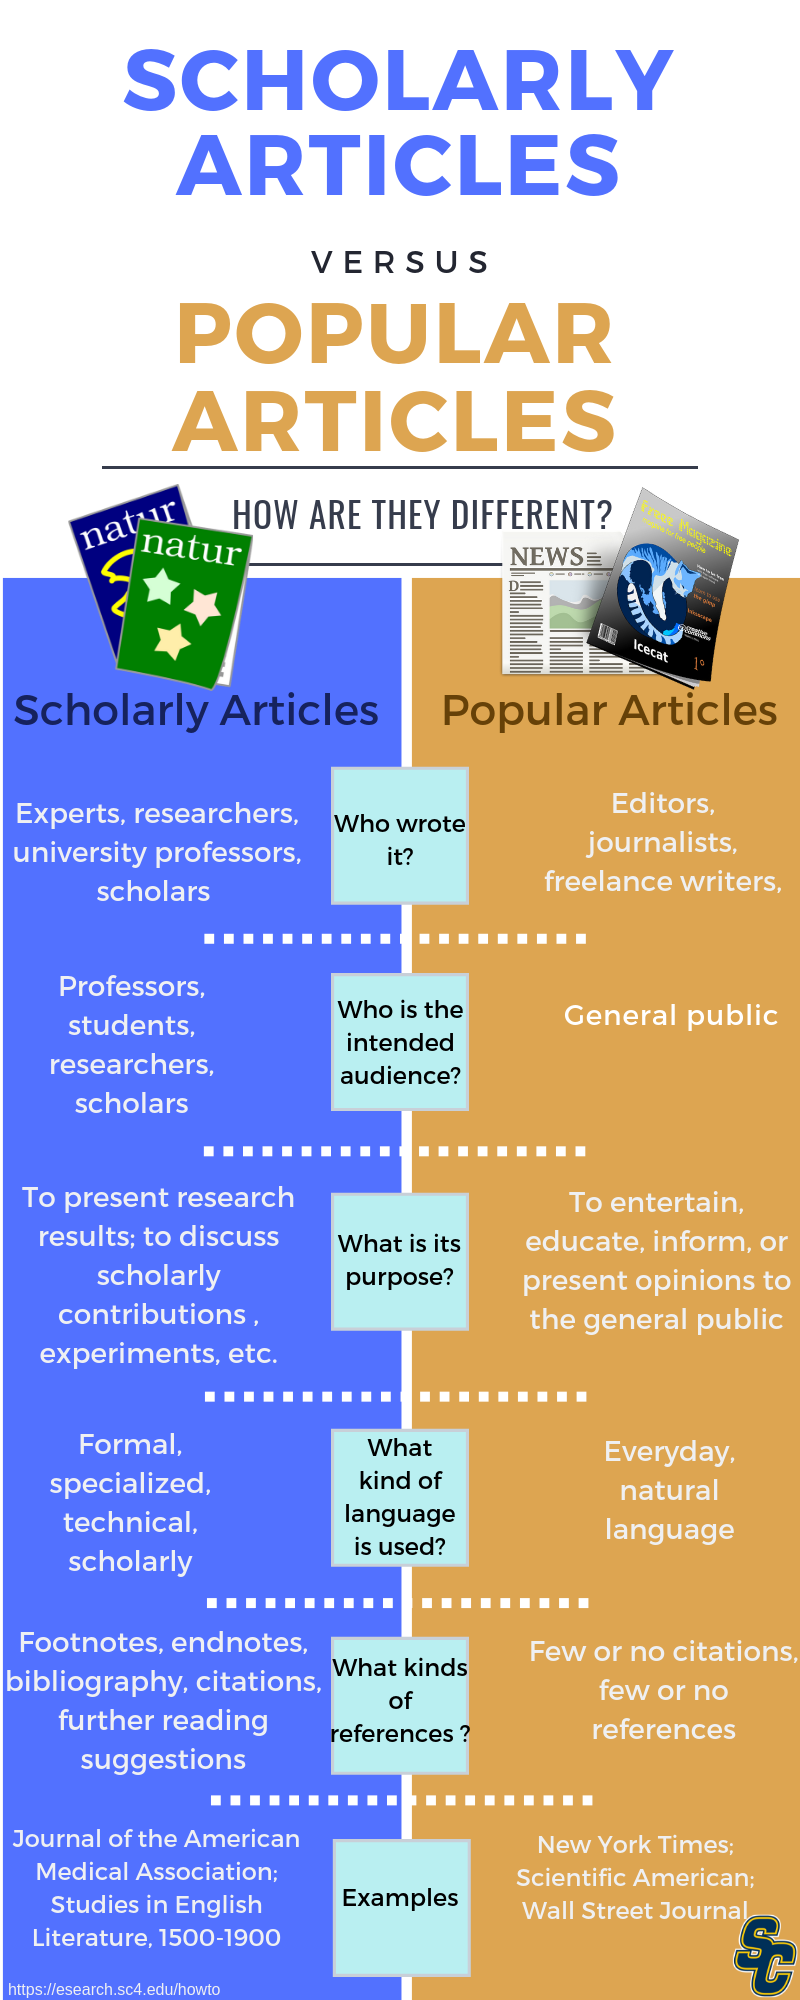 scholarly articles vs popular articles infographic